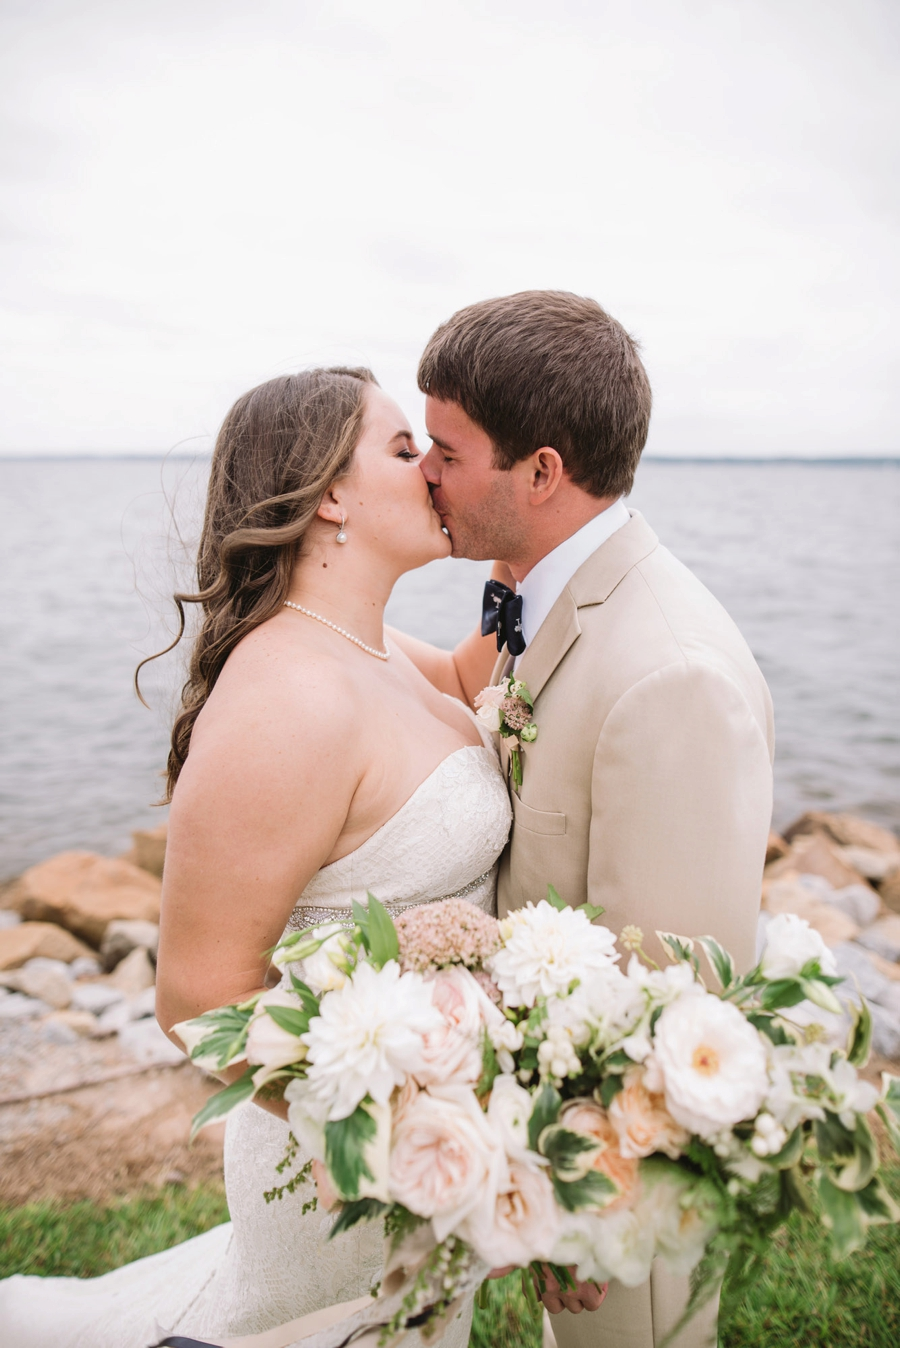 Romantic Lakeside Navy and Blush Wedding via TheELD.com